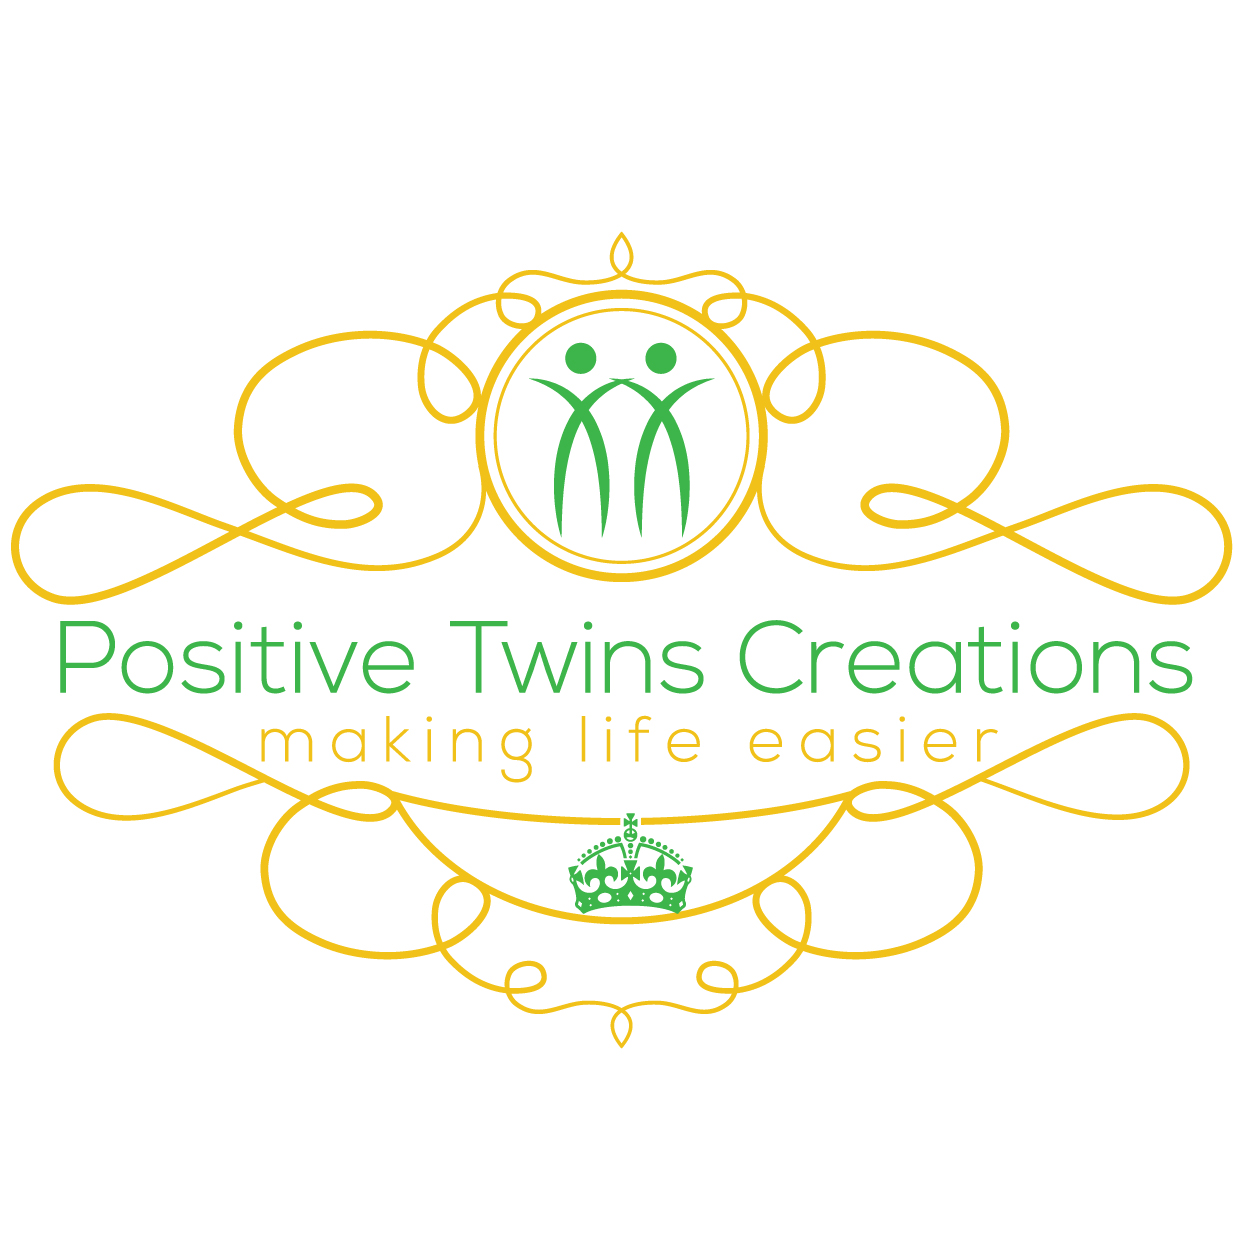 Positive Twins Creations